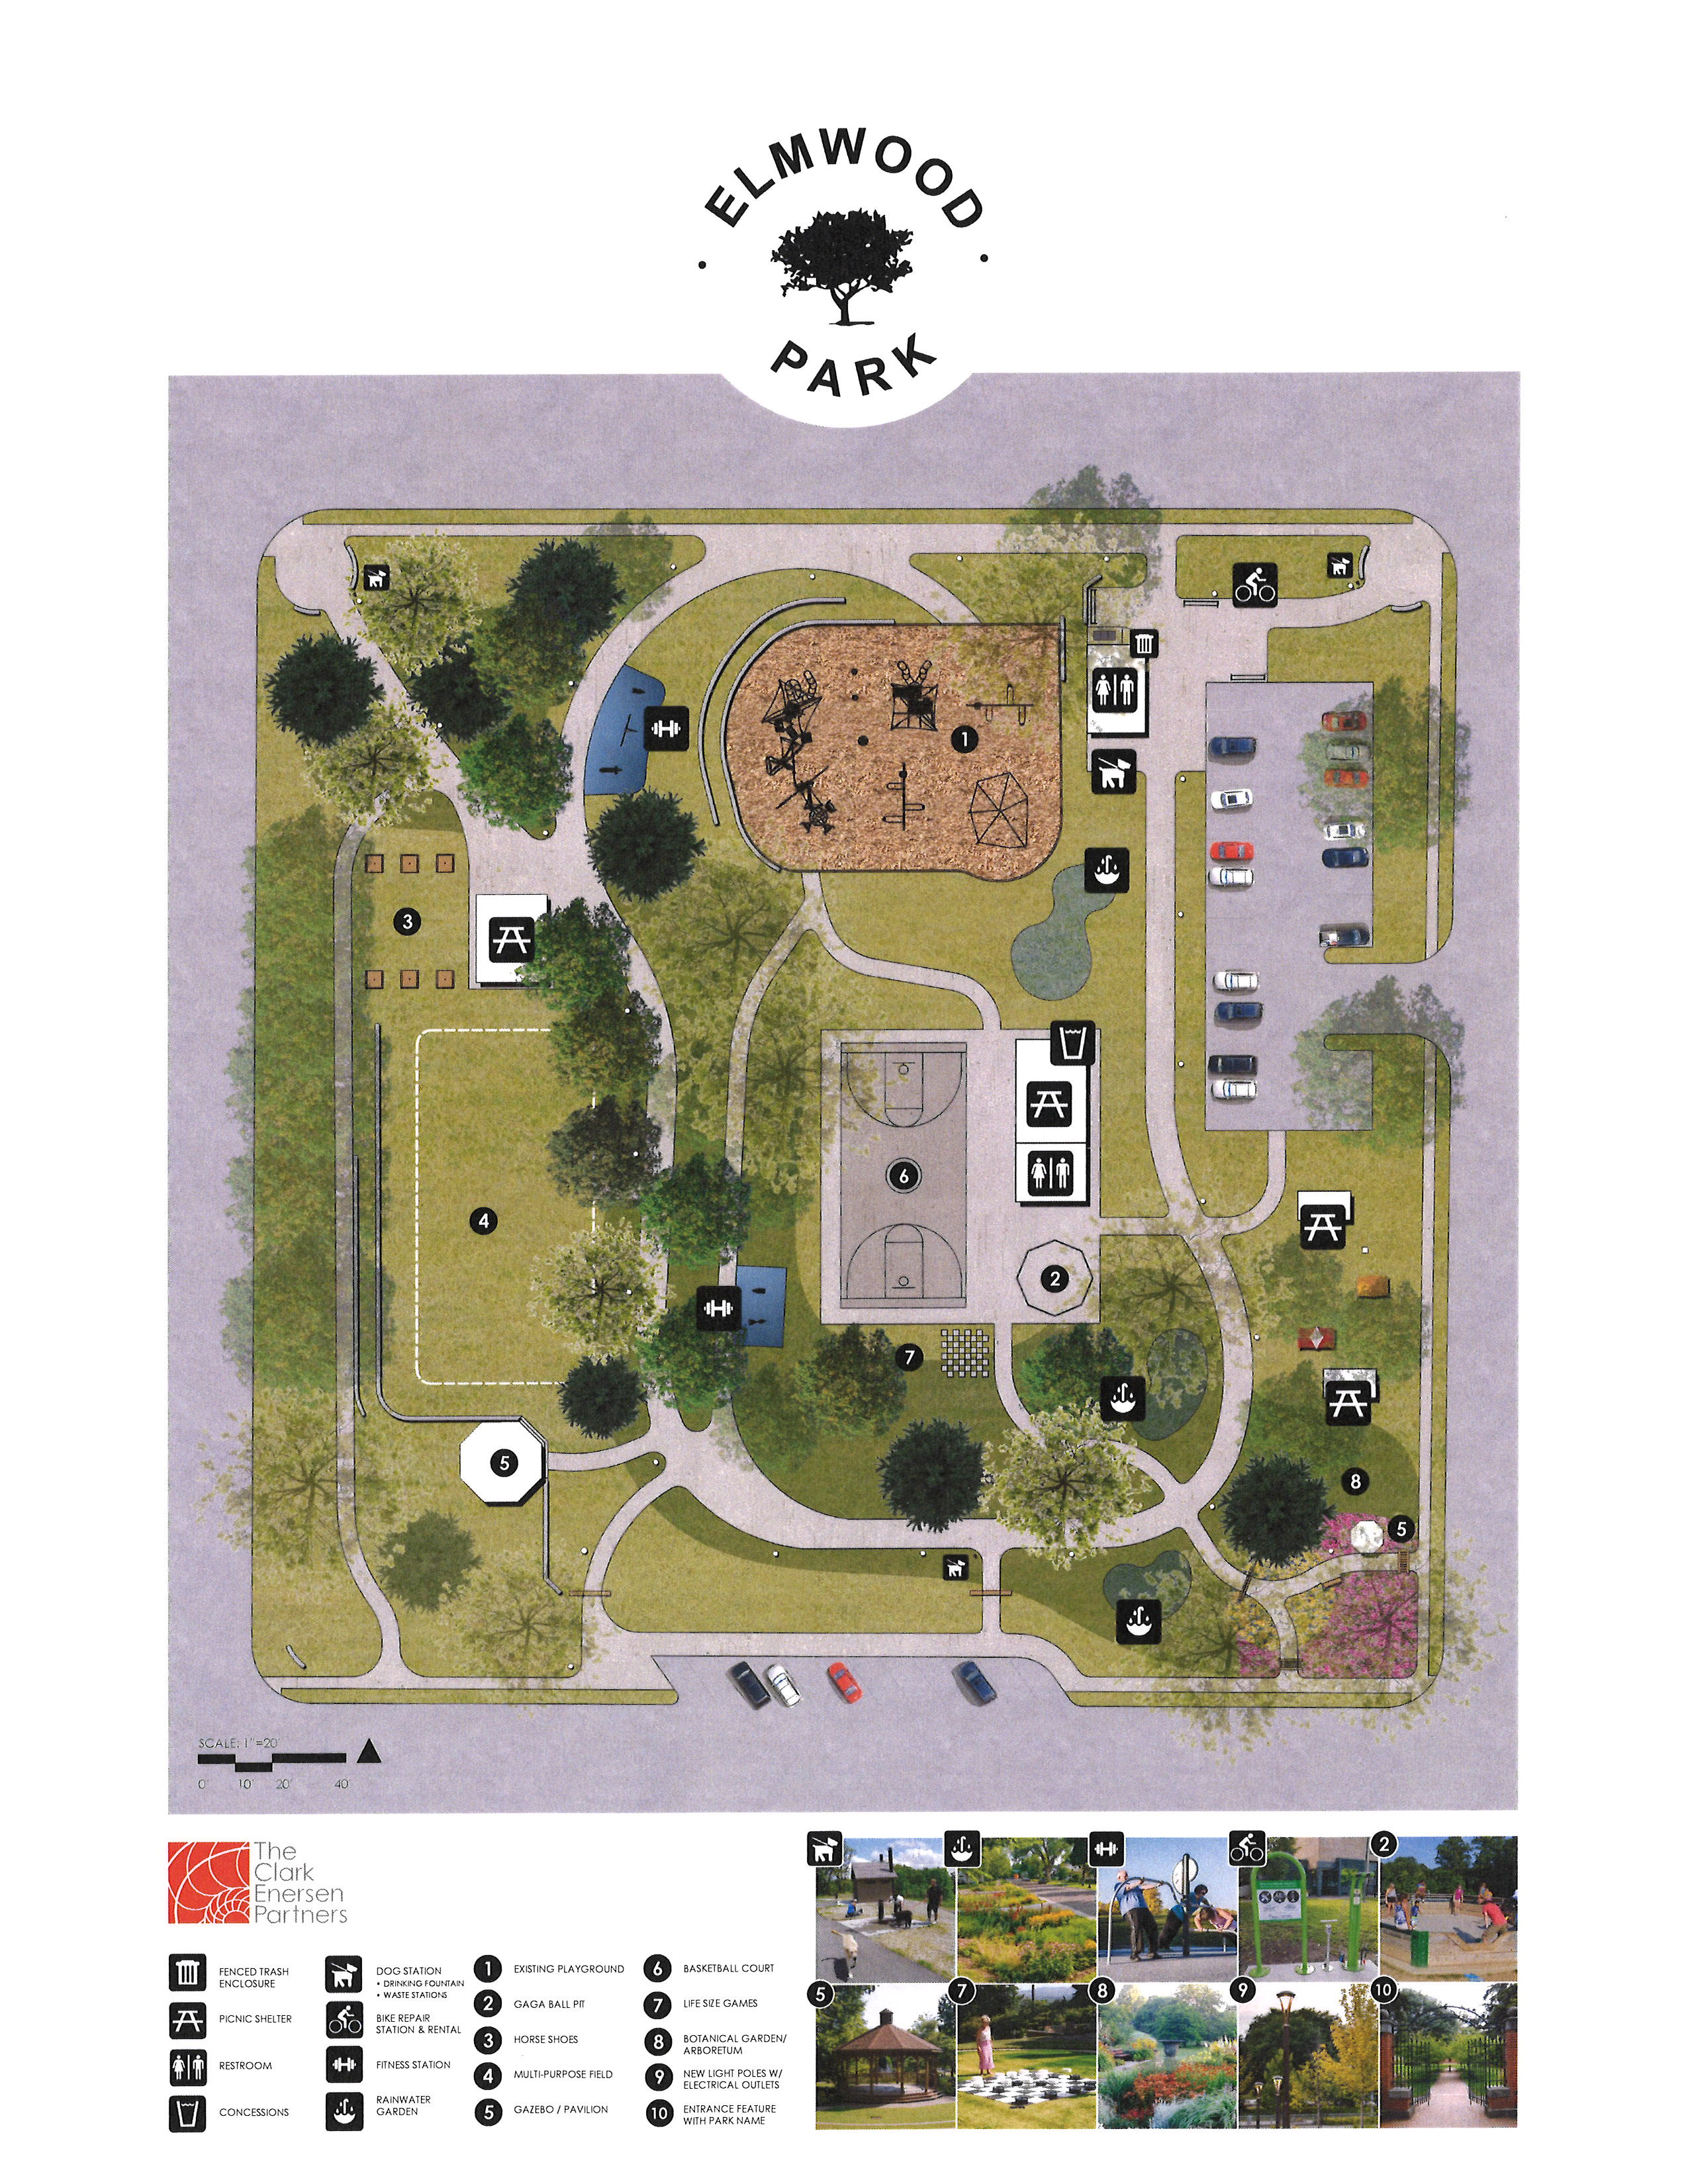 2018 Final Plan for Elmwood BSA Park from Clark Enerson copy